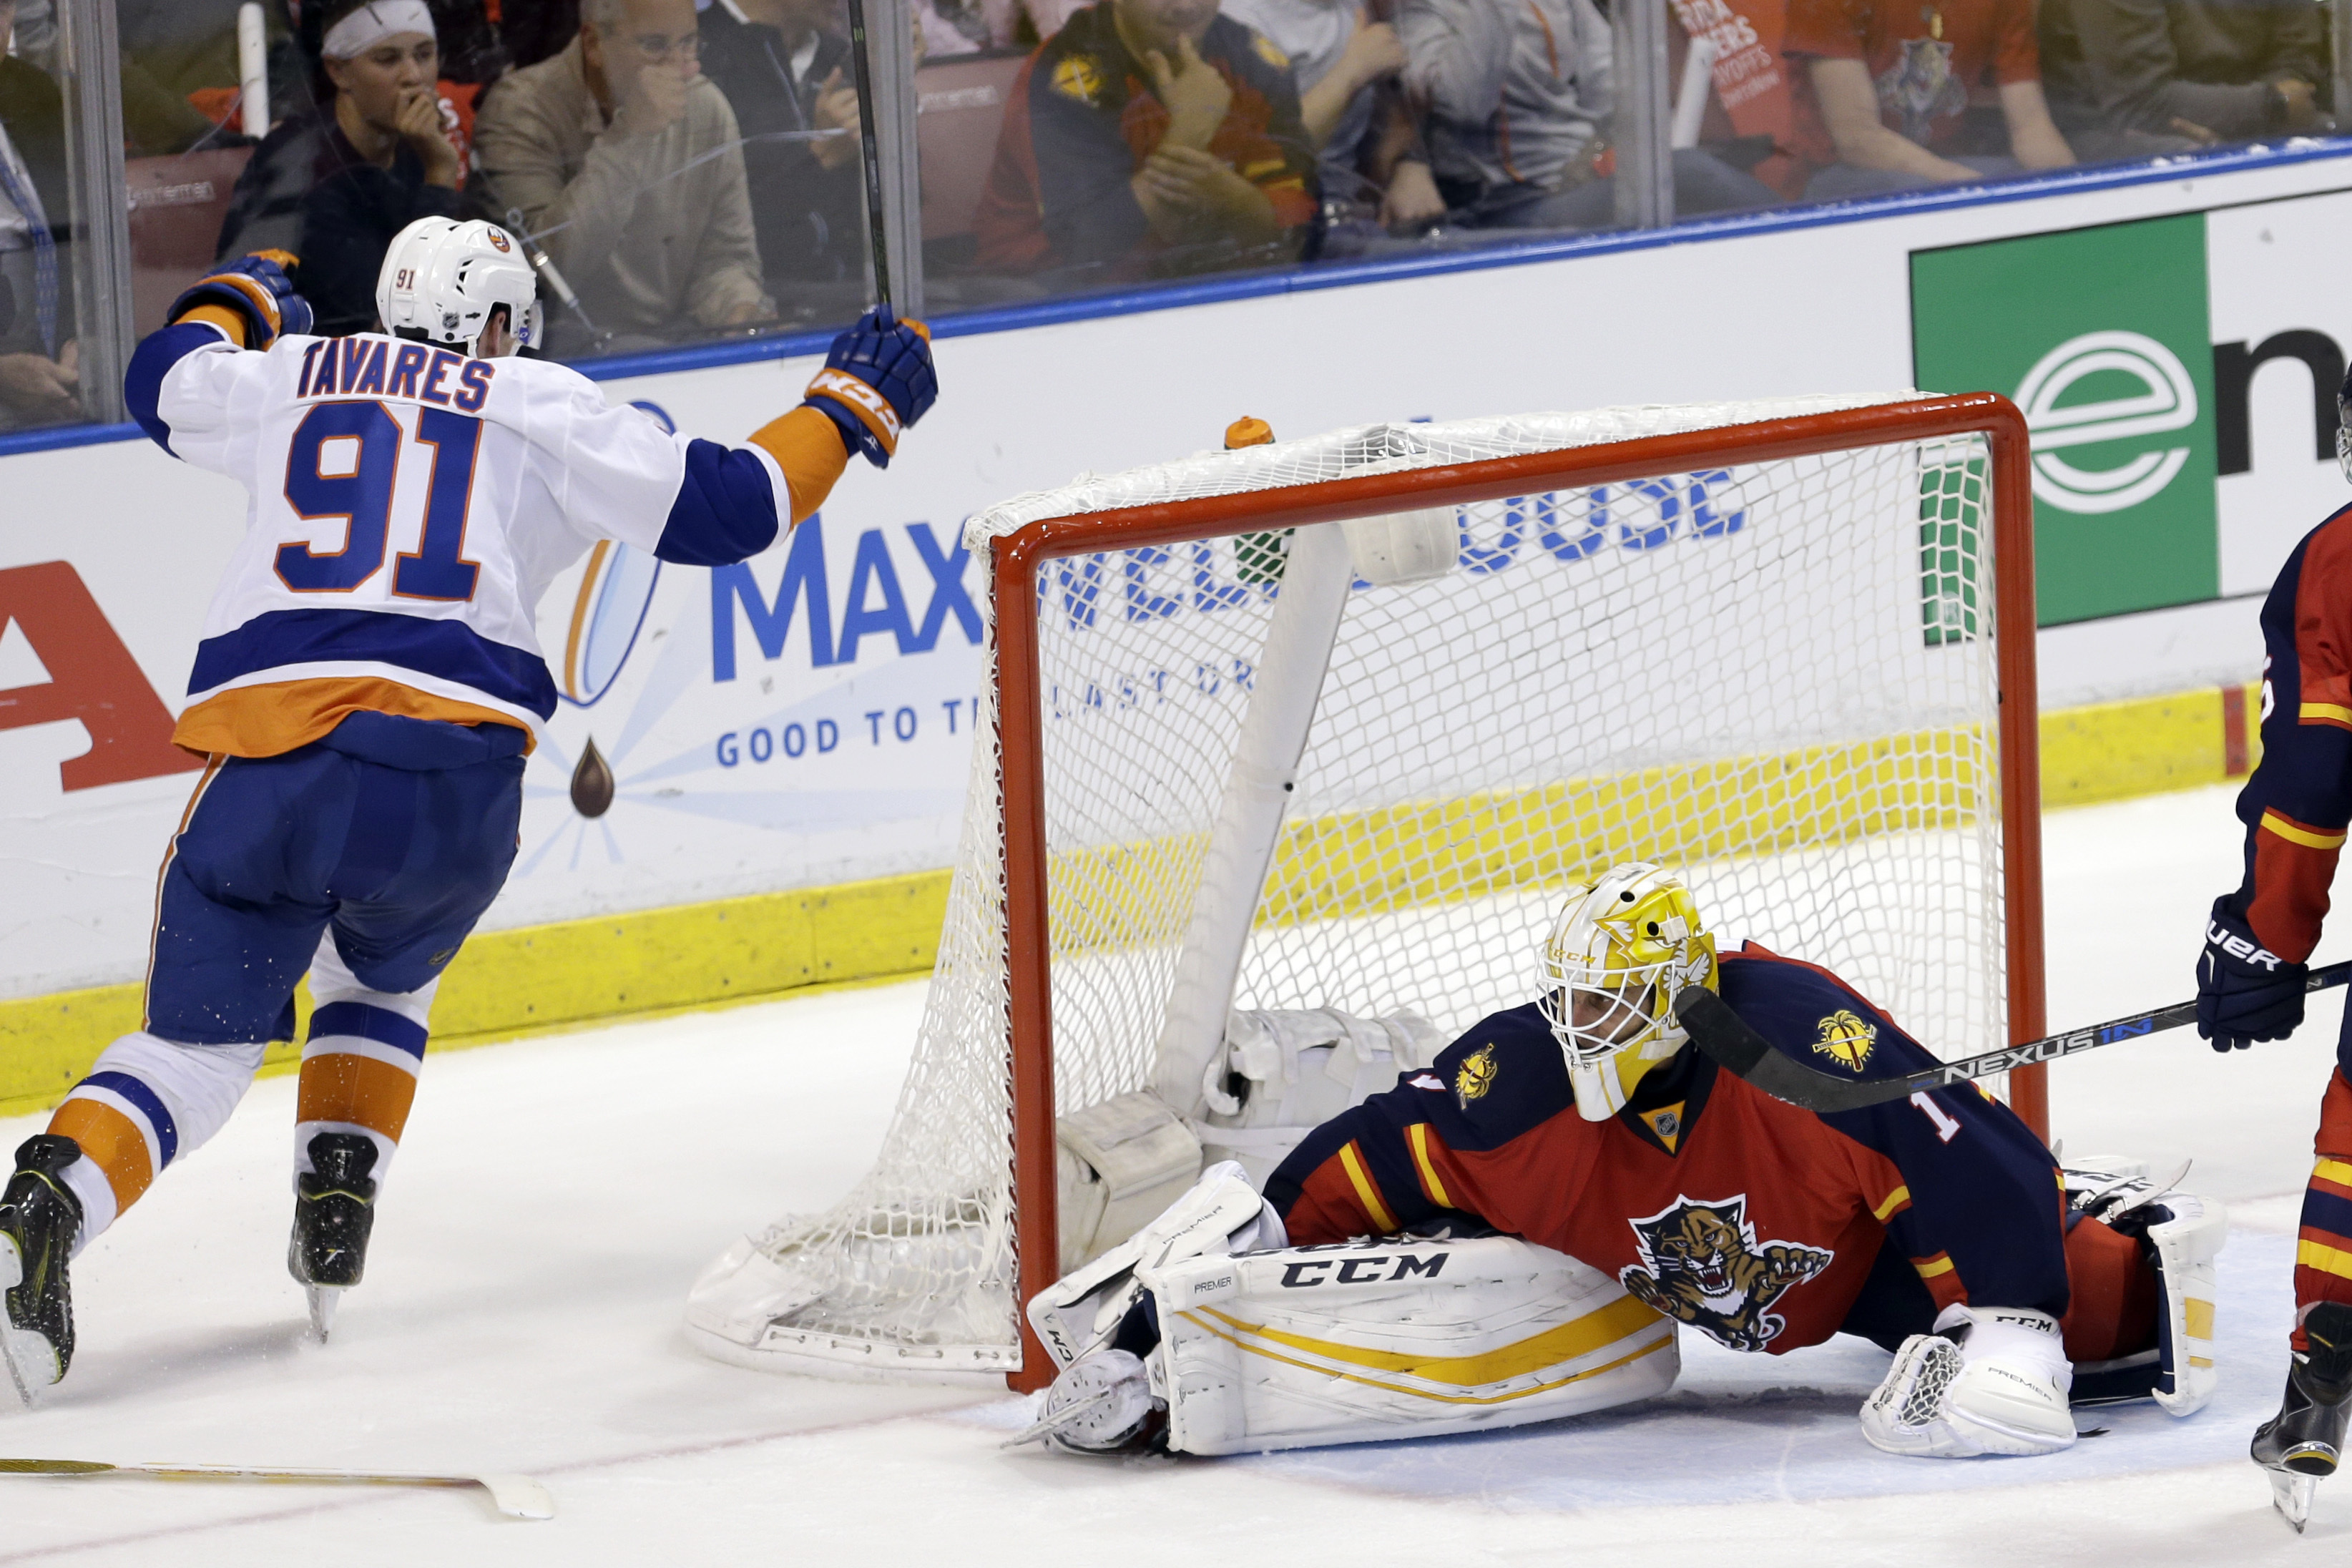 New York Islanders center John Tavares (91) celebrates after scoring a goal against Florida Panthers goalie Roberto Luongo (1) during the second period of Game 1 in a first-round NHL hockey Stanley Cup playoff series, Thursday, April 14, 2016, in Sunrise,